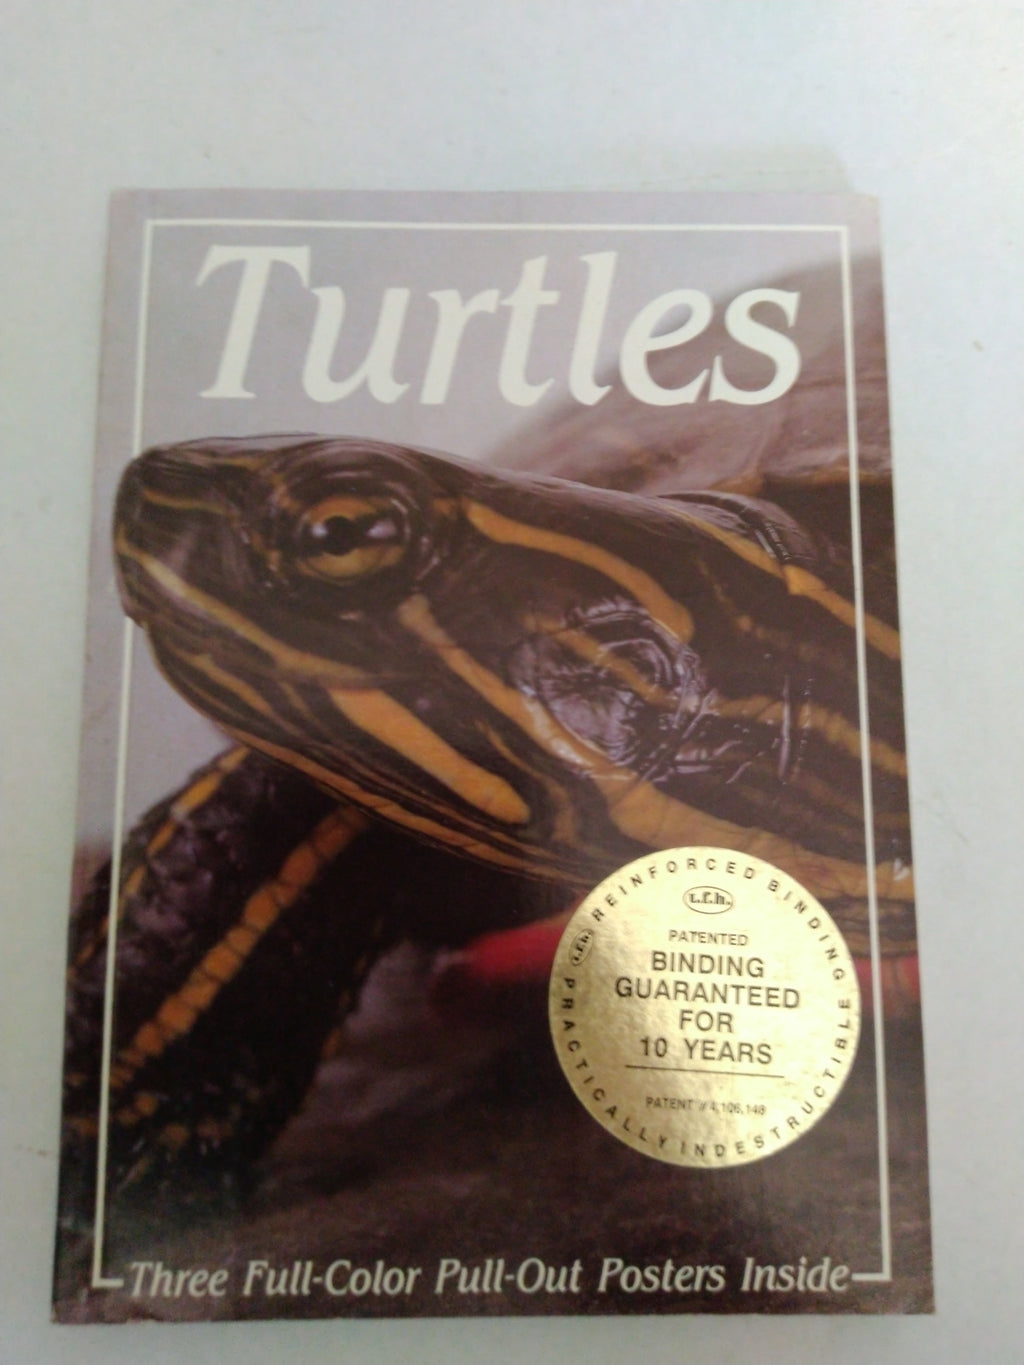 Turtles-Poster Book by John M. Mehrtens